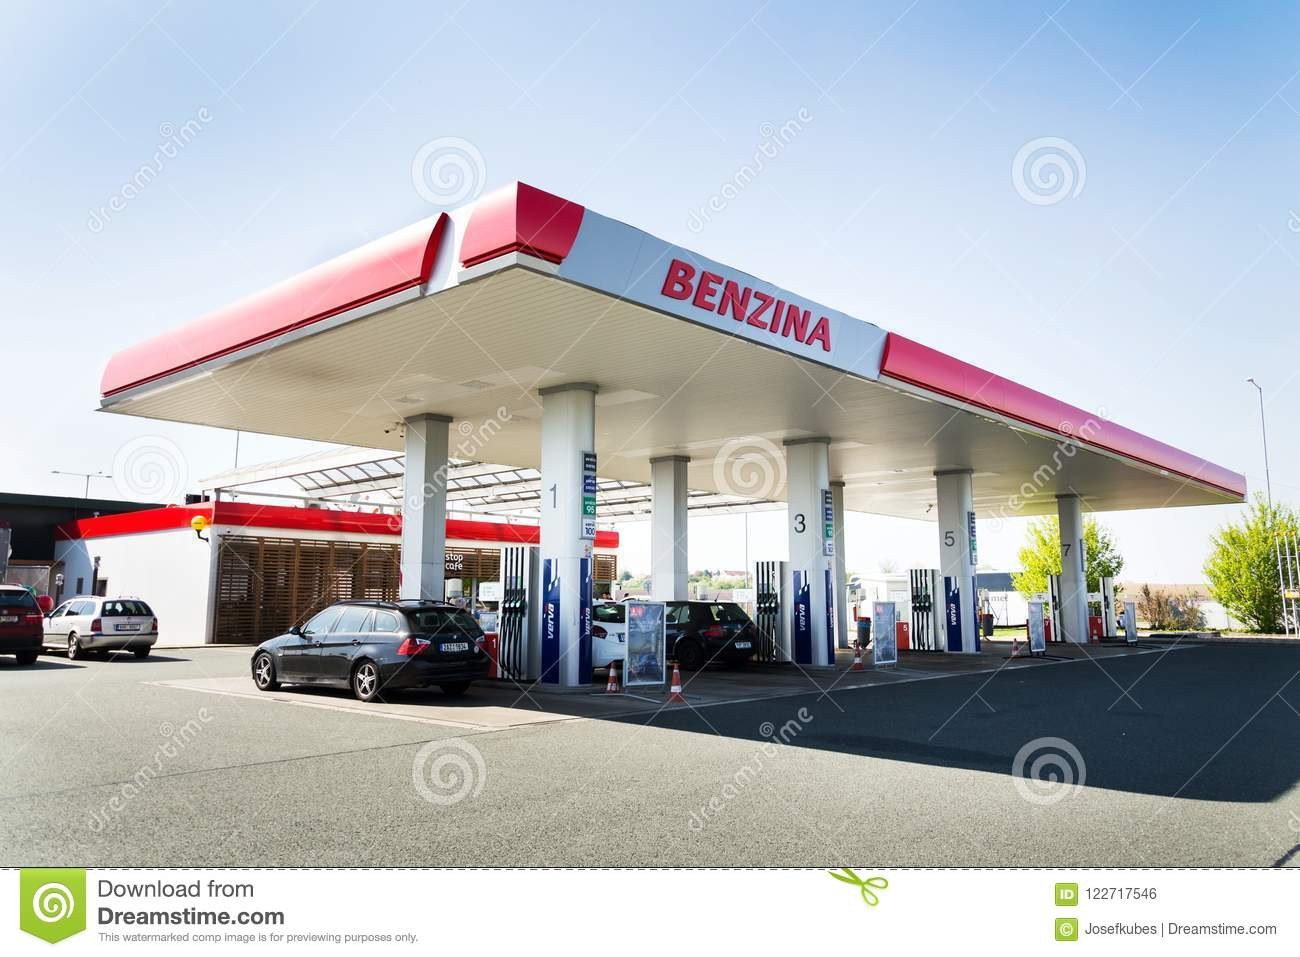 Benzina Oil And Gas Company Logo On Petrol Station Editorial